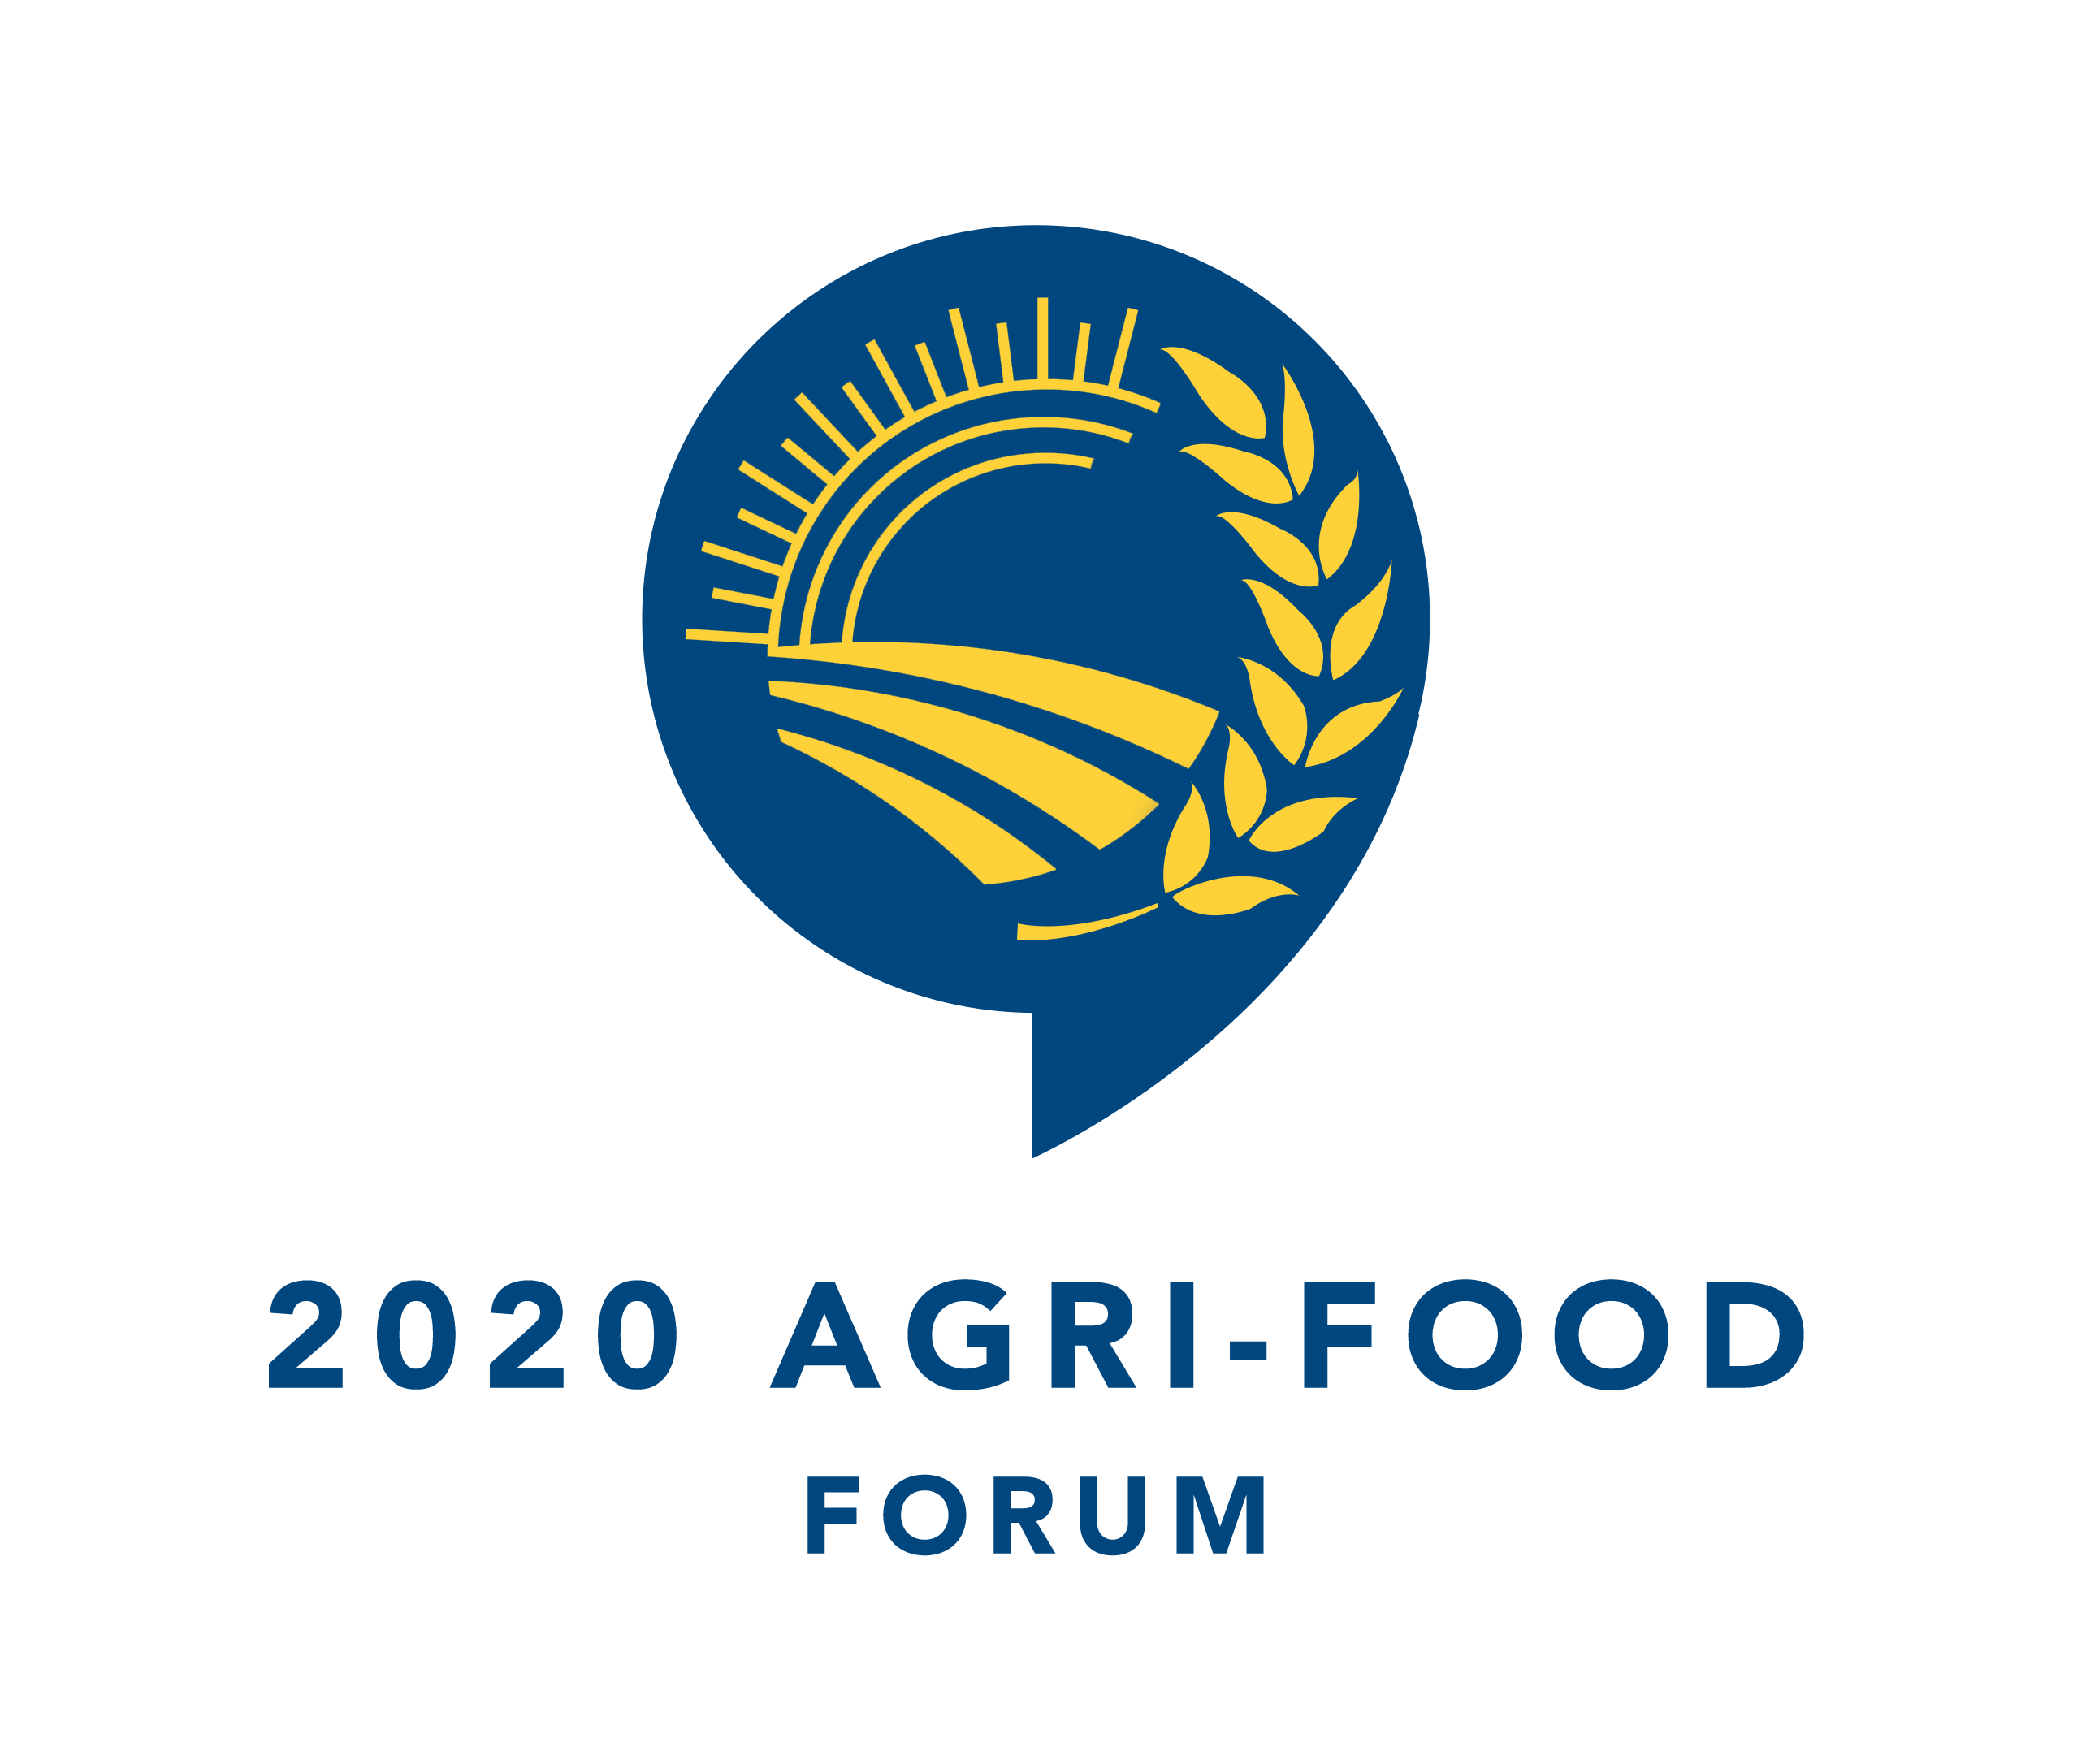 2020 Agri-Food Forum - Logo